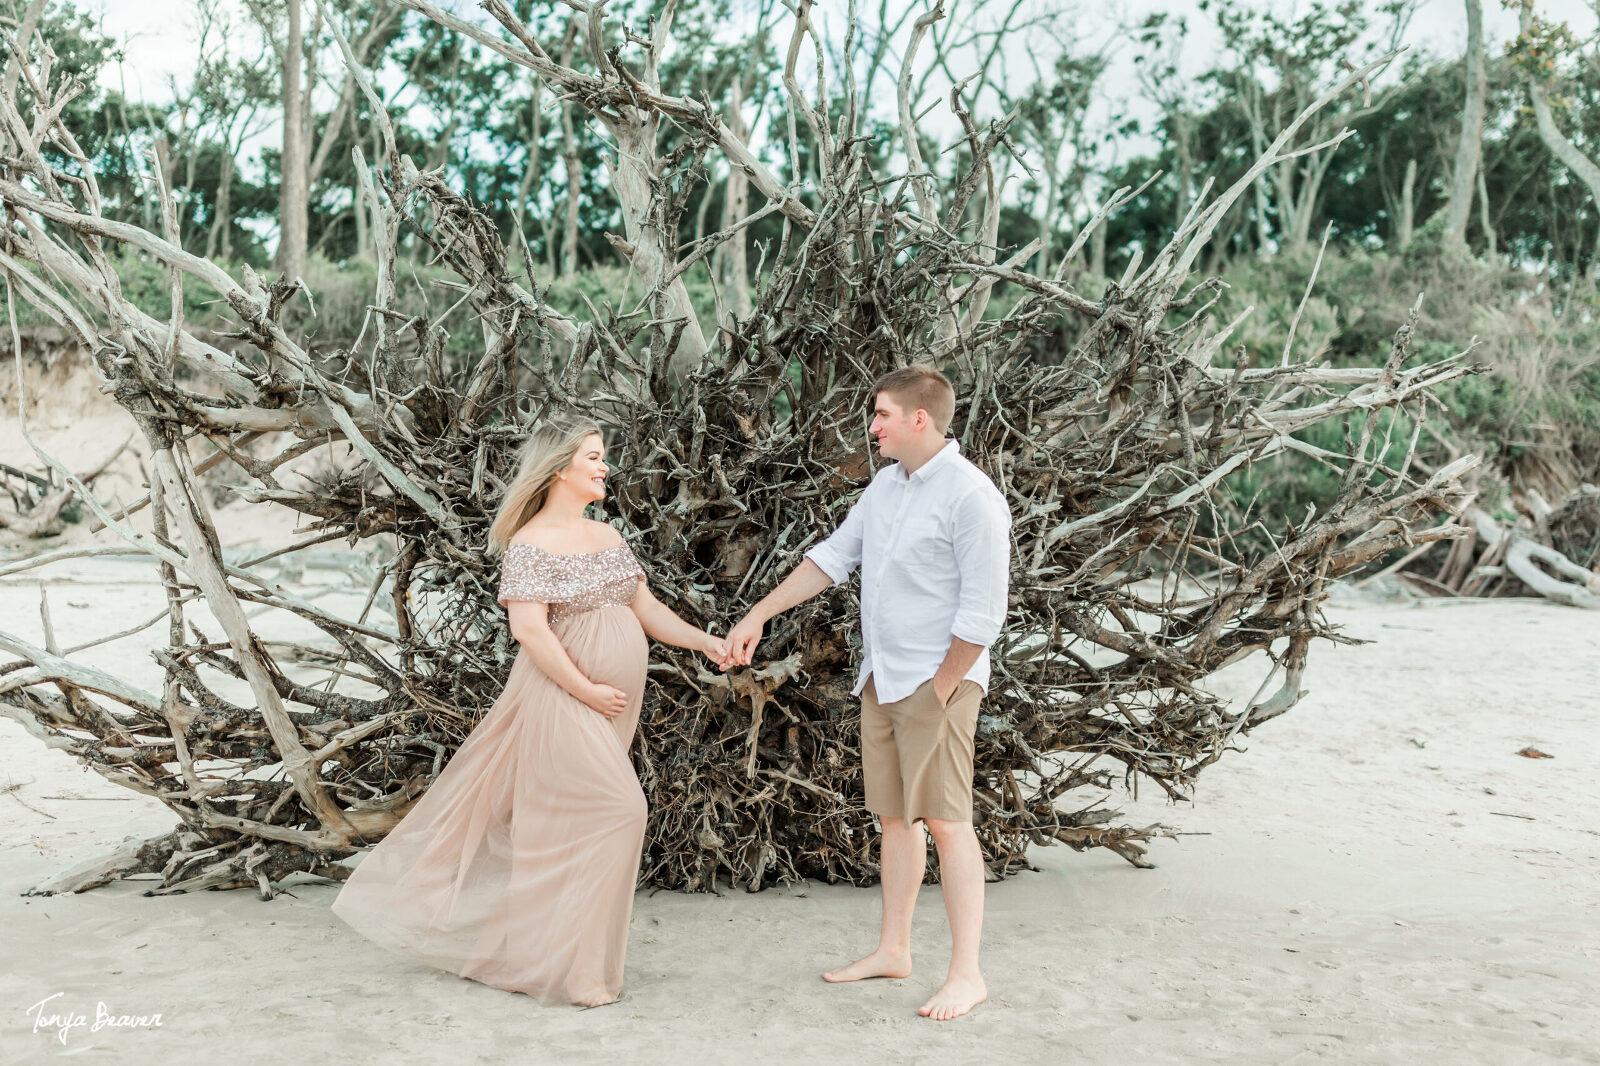 jacksonville maternity photos; little talbot island maternity photos